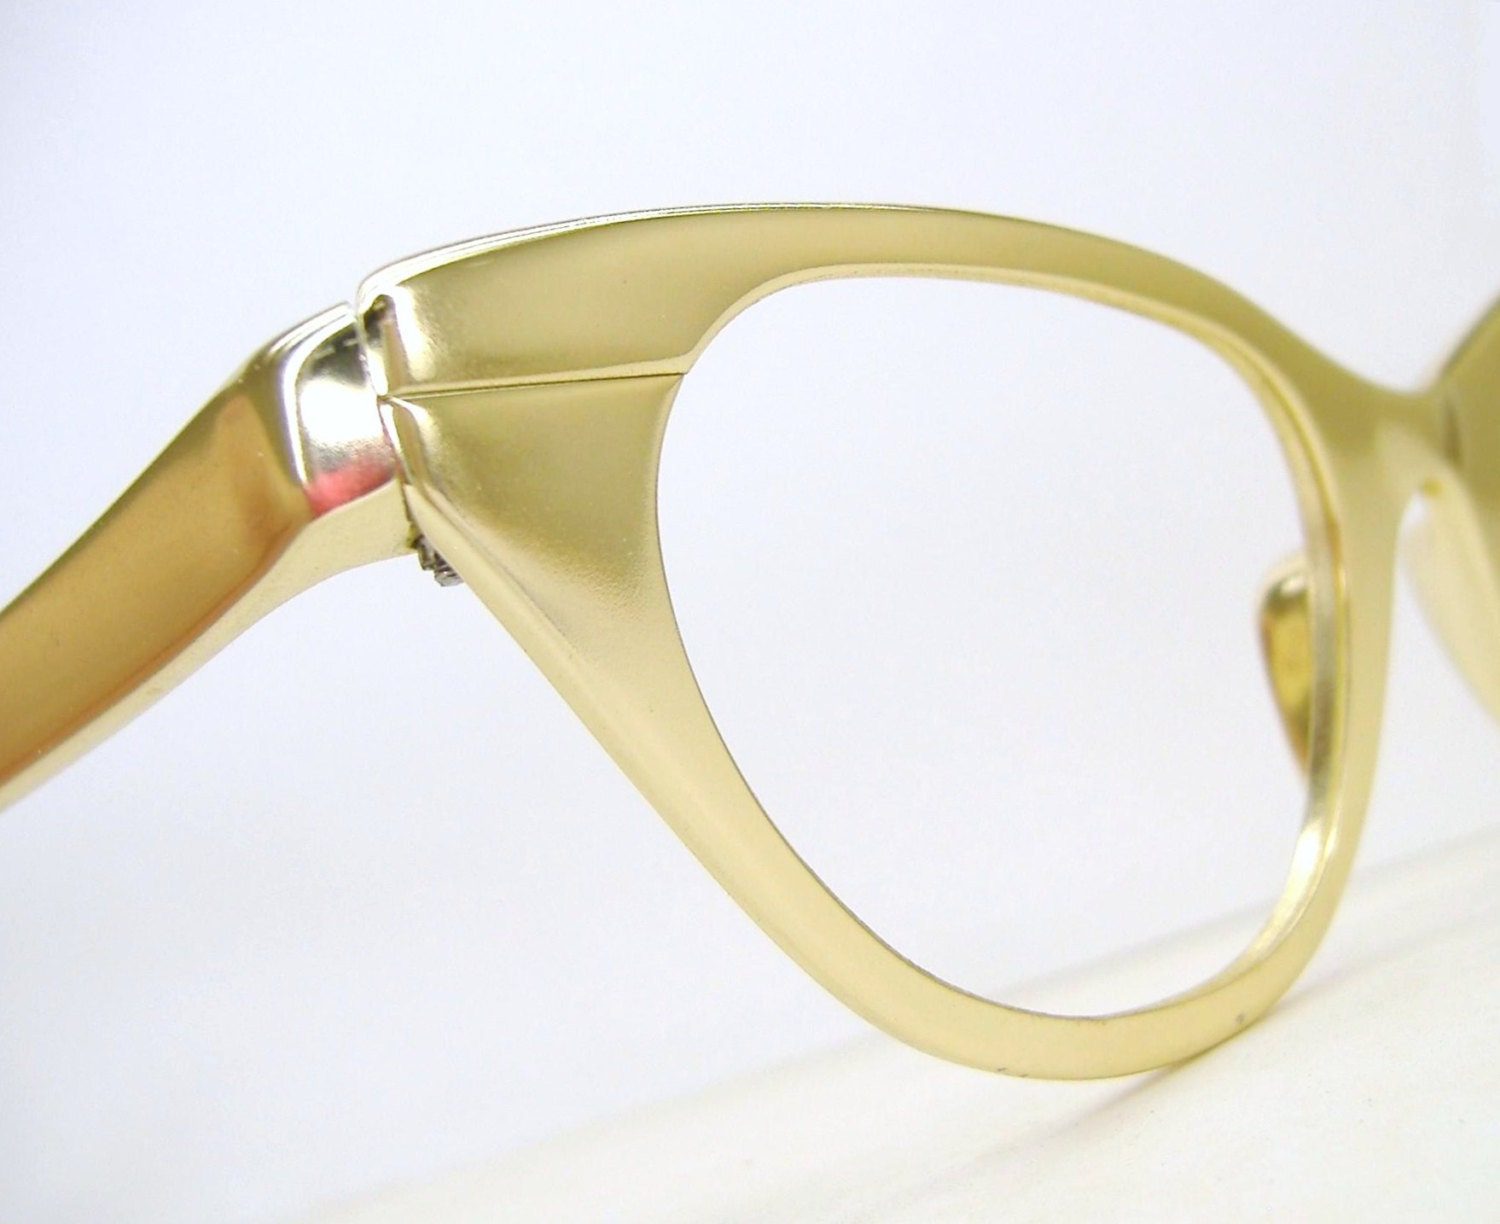 Vintage Gold Tura Cat Eye Glasses Eyeglasses Sunglasses Frame